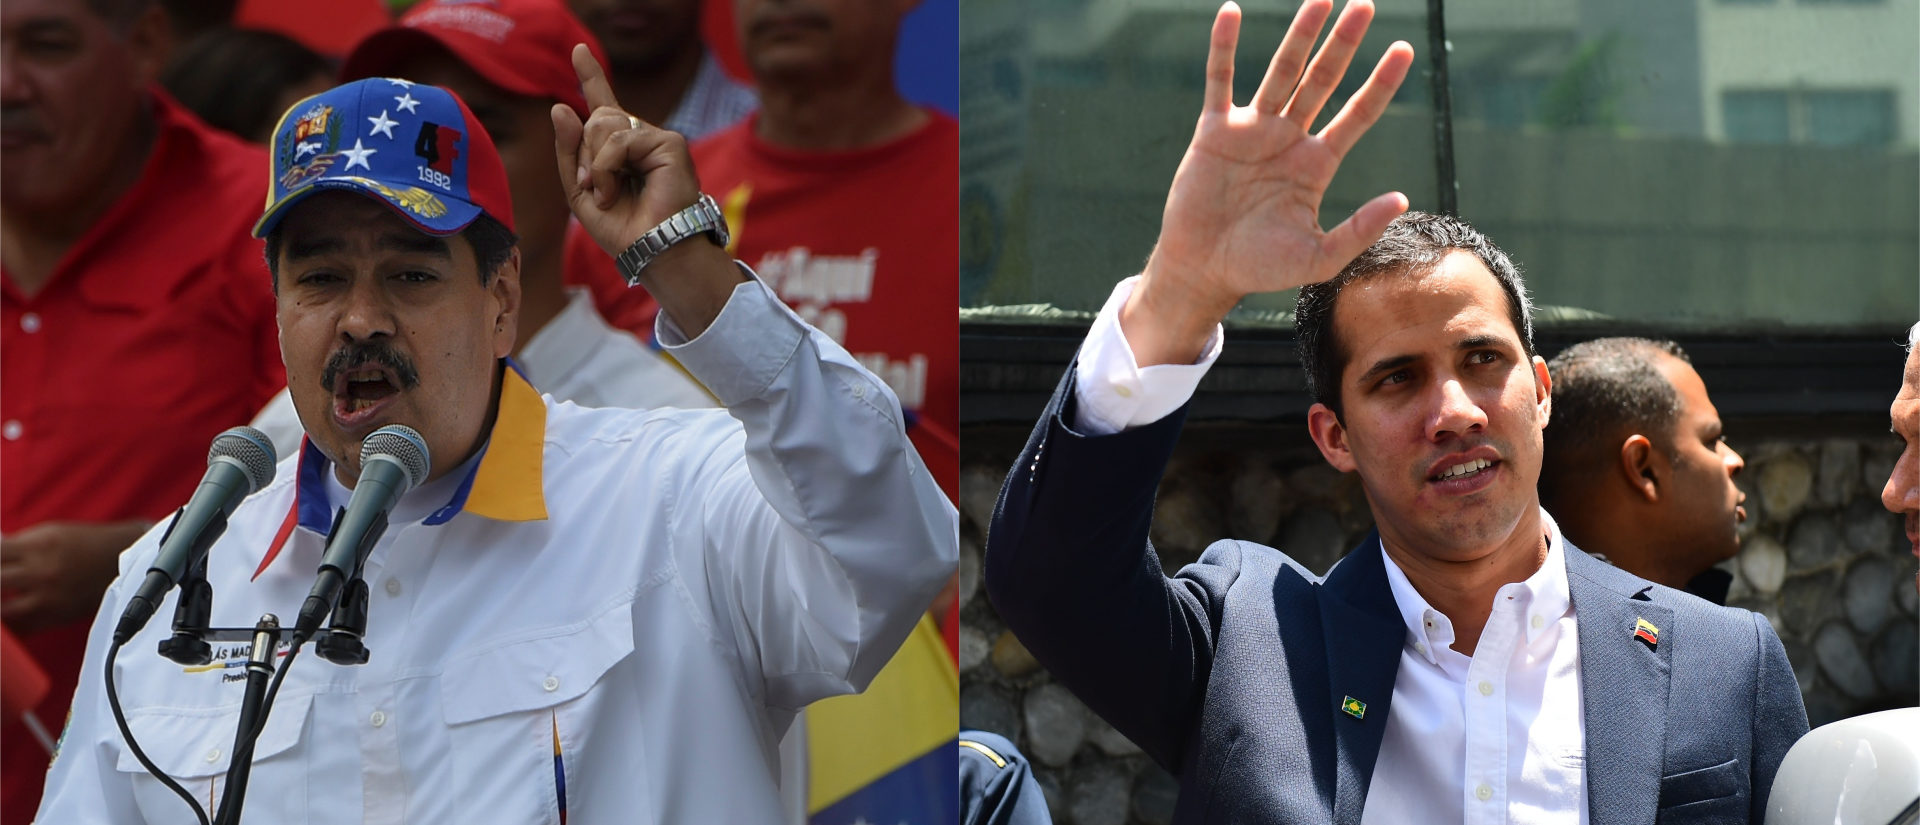 Maduro and Guiado side-by-side/ Getty Images collage